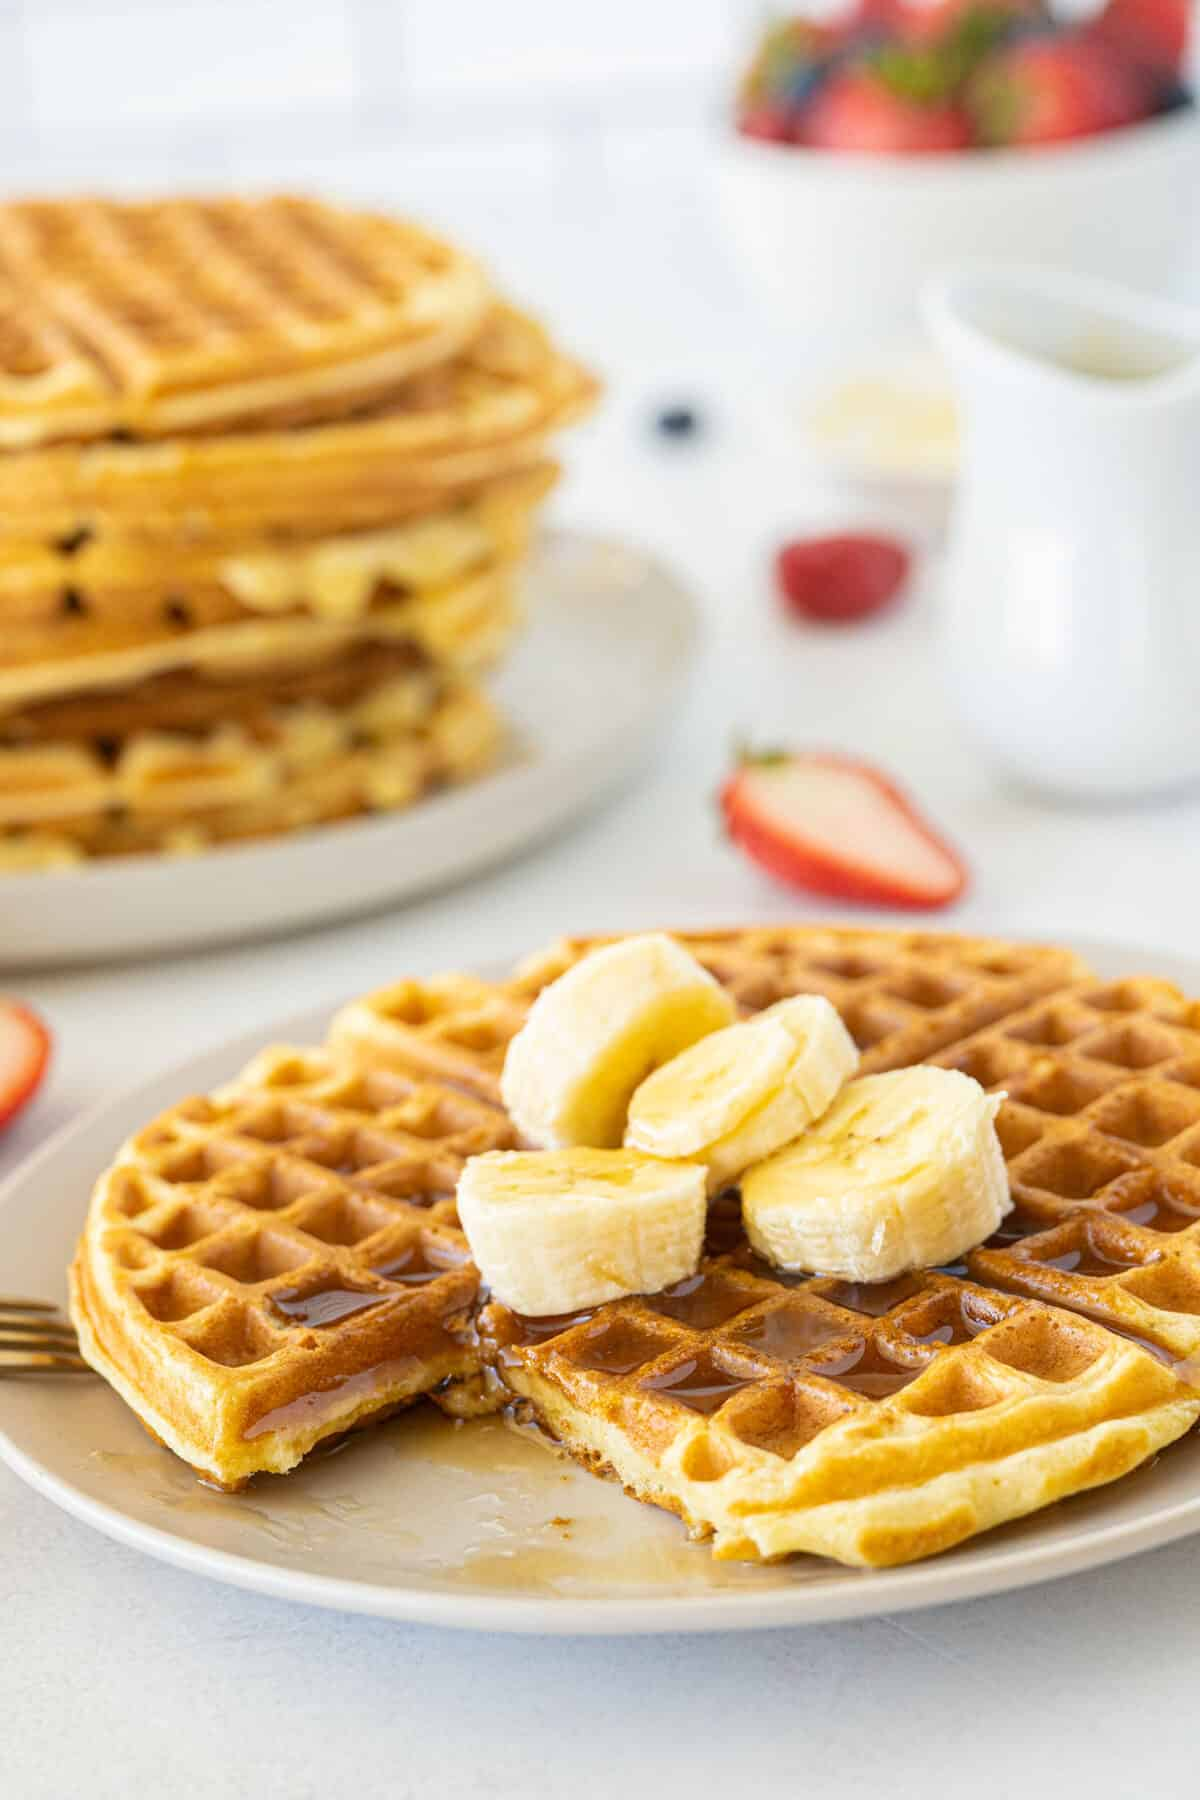 sliced buttermilk waffles with bananas and syrup on top